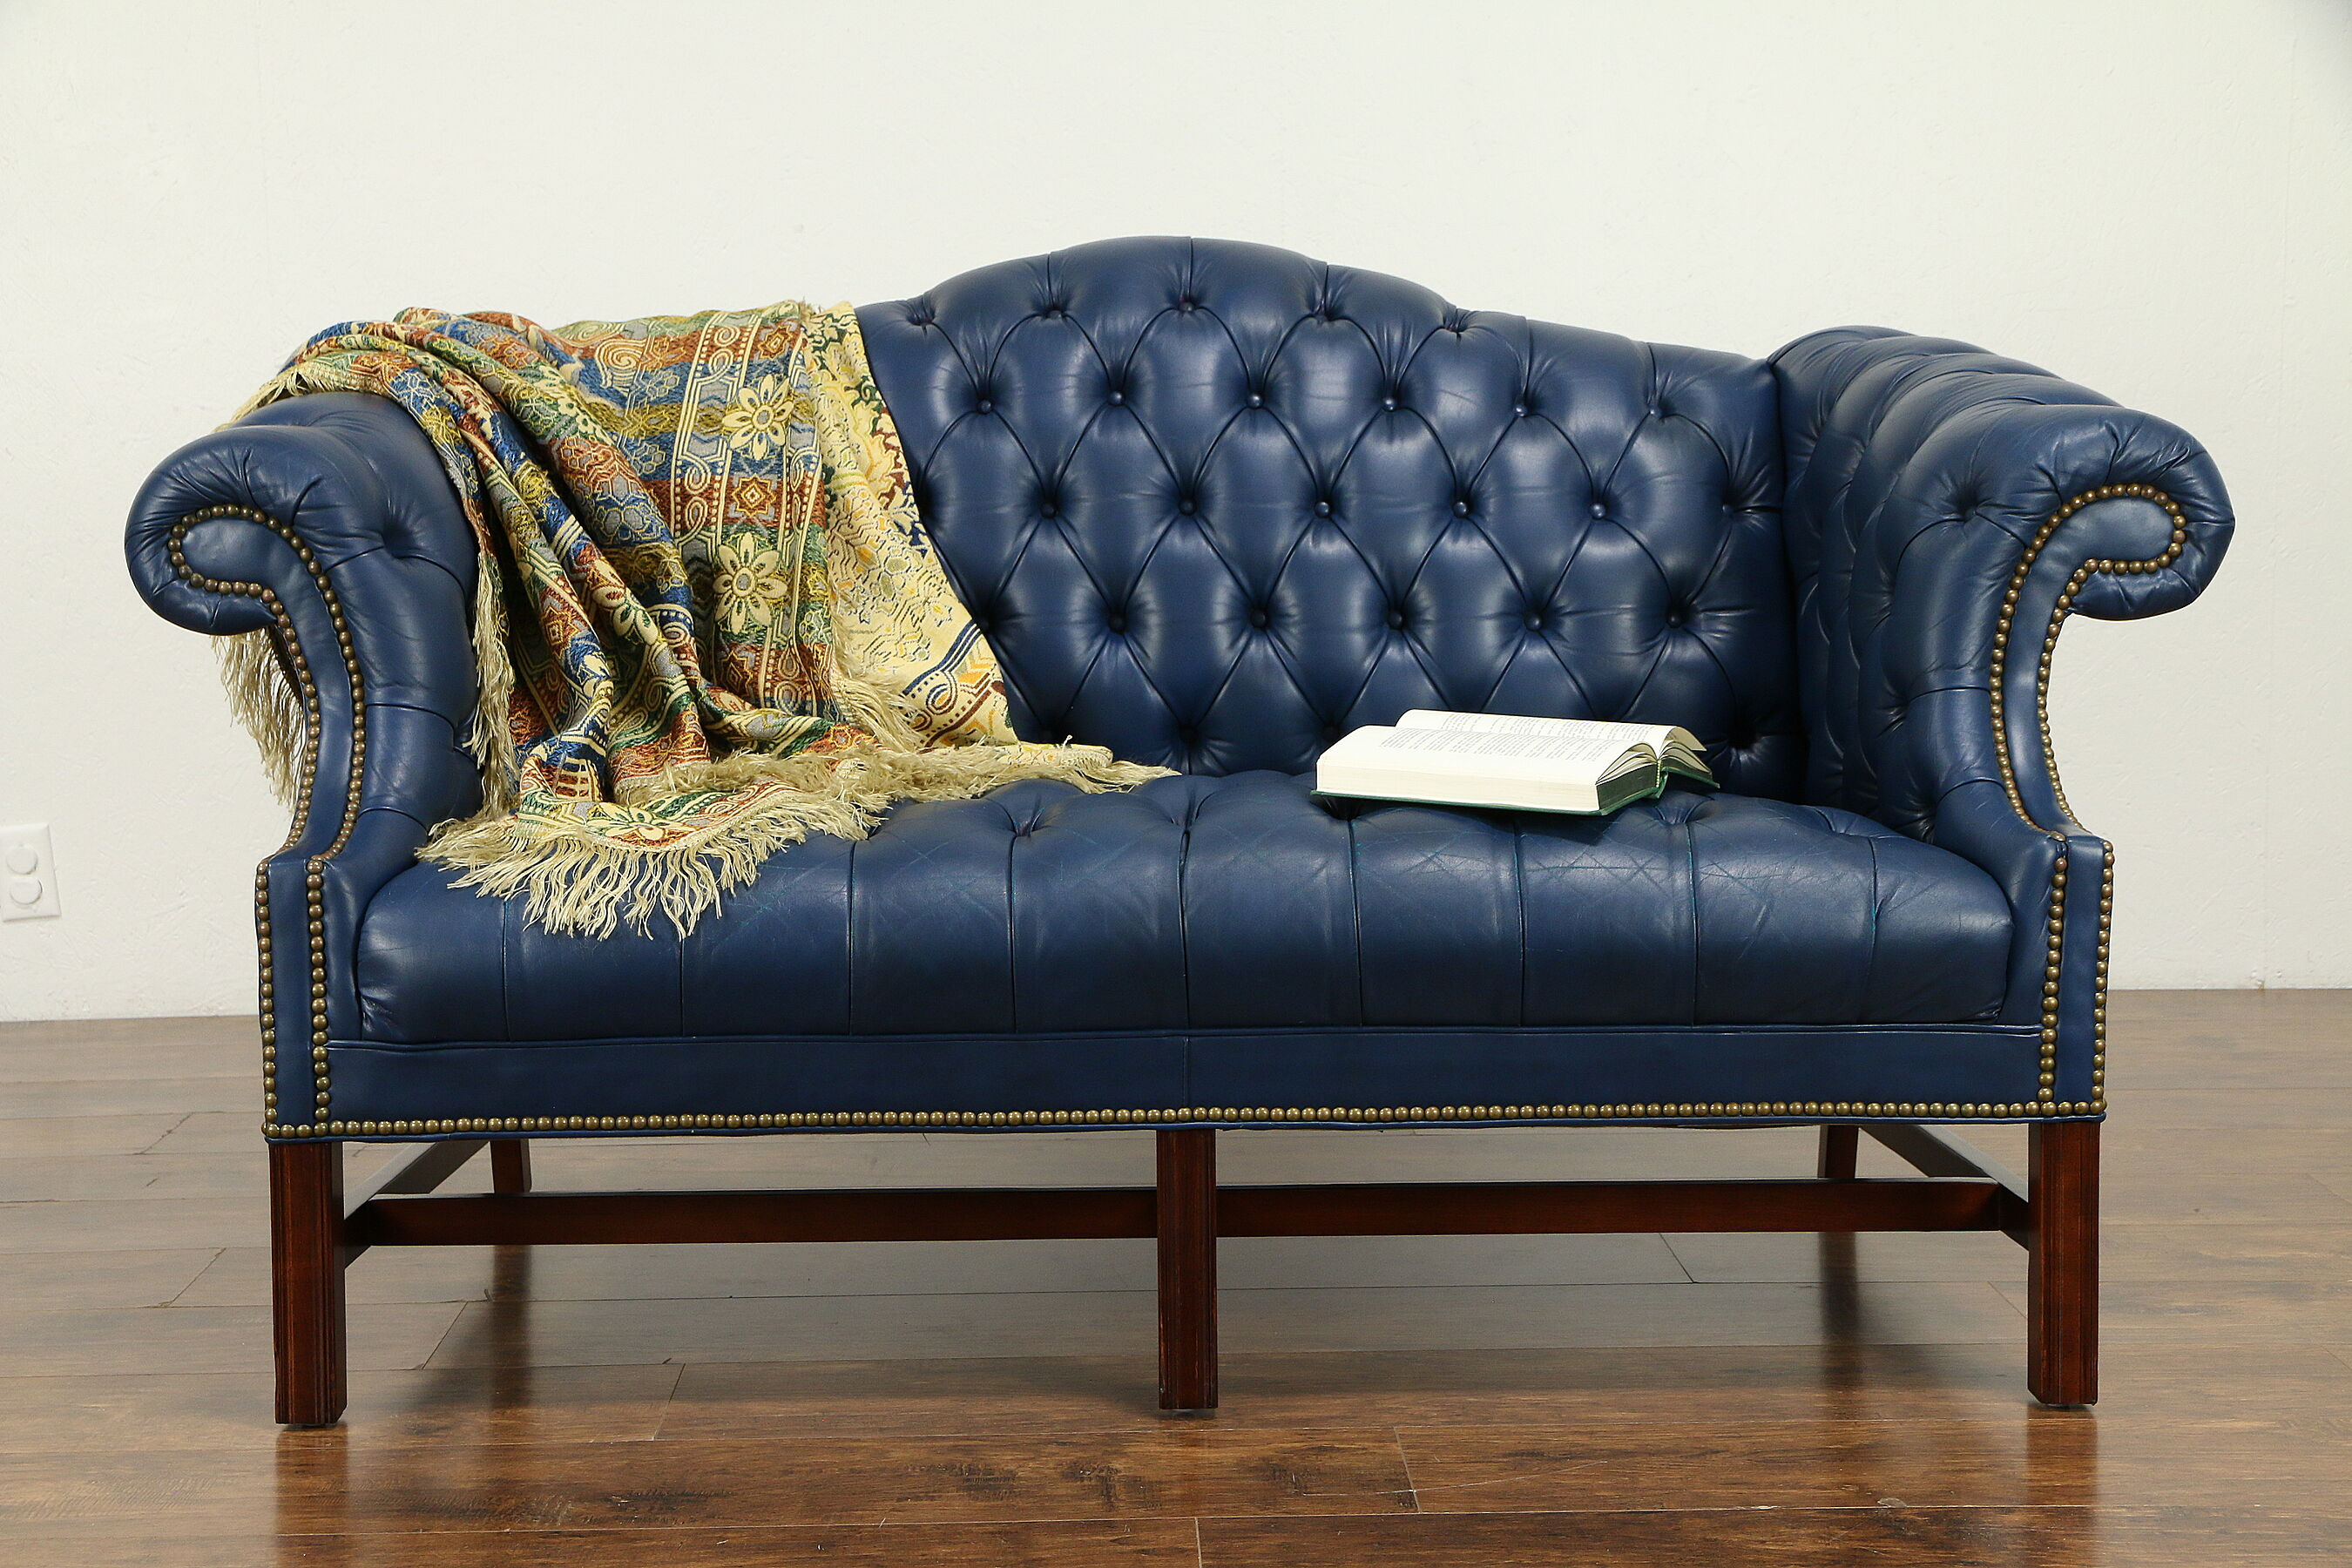 - SOLD - Chesterfield Vintage Tufted Leather Sofa Or Loveseat #31286